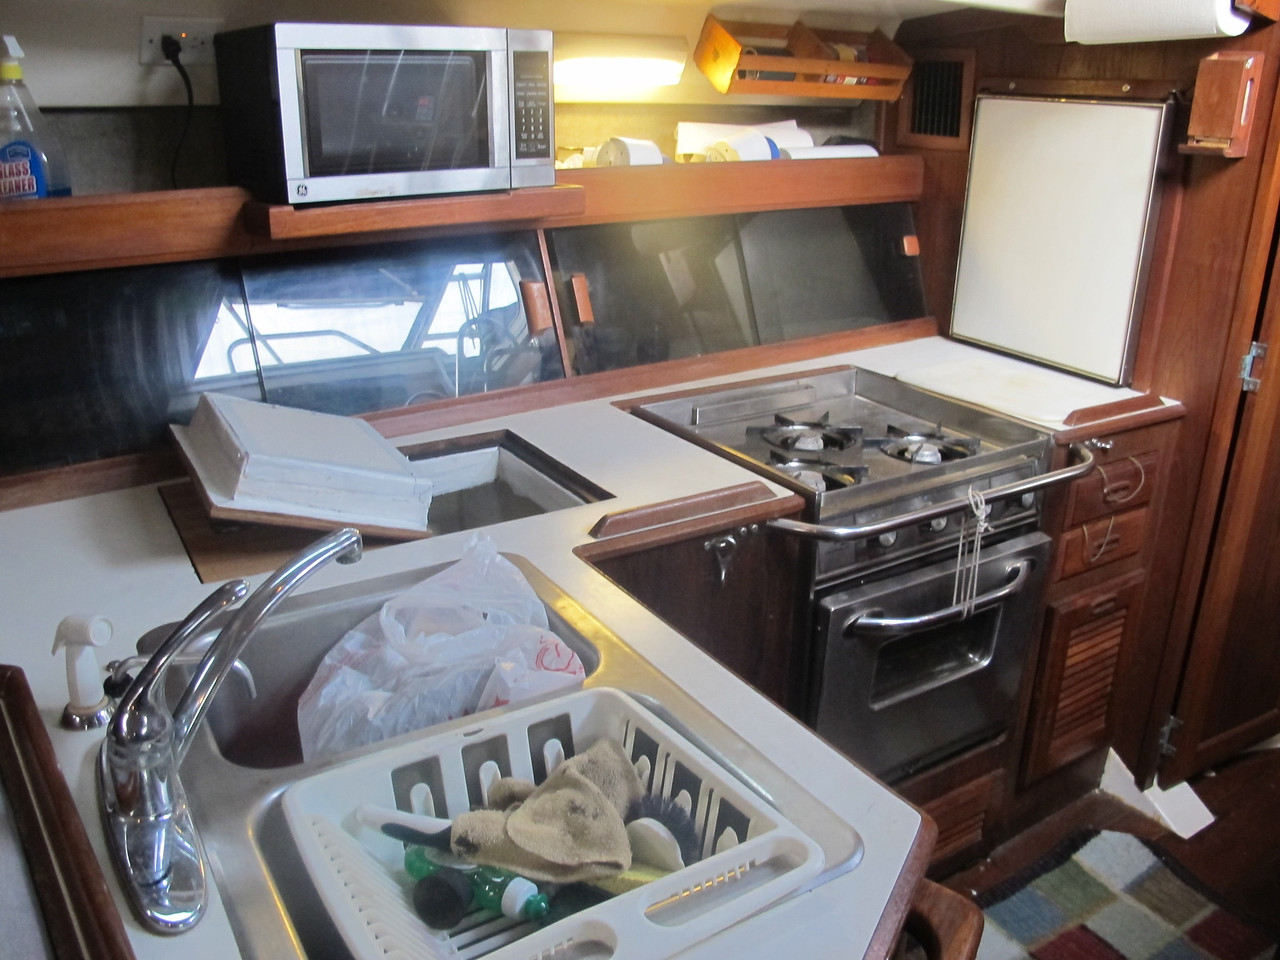 Galley with pressurized hot and cold water, propane oven, icebox, fridge, and microwave.